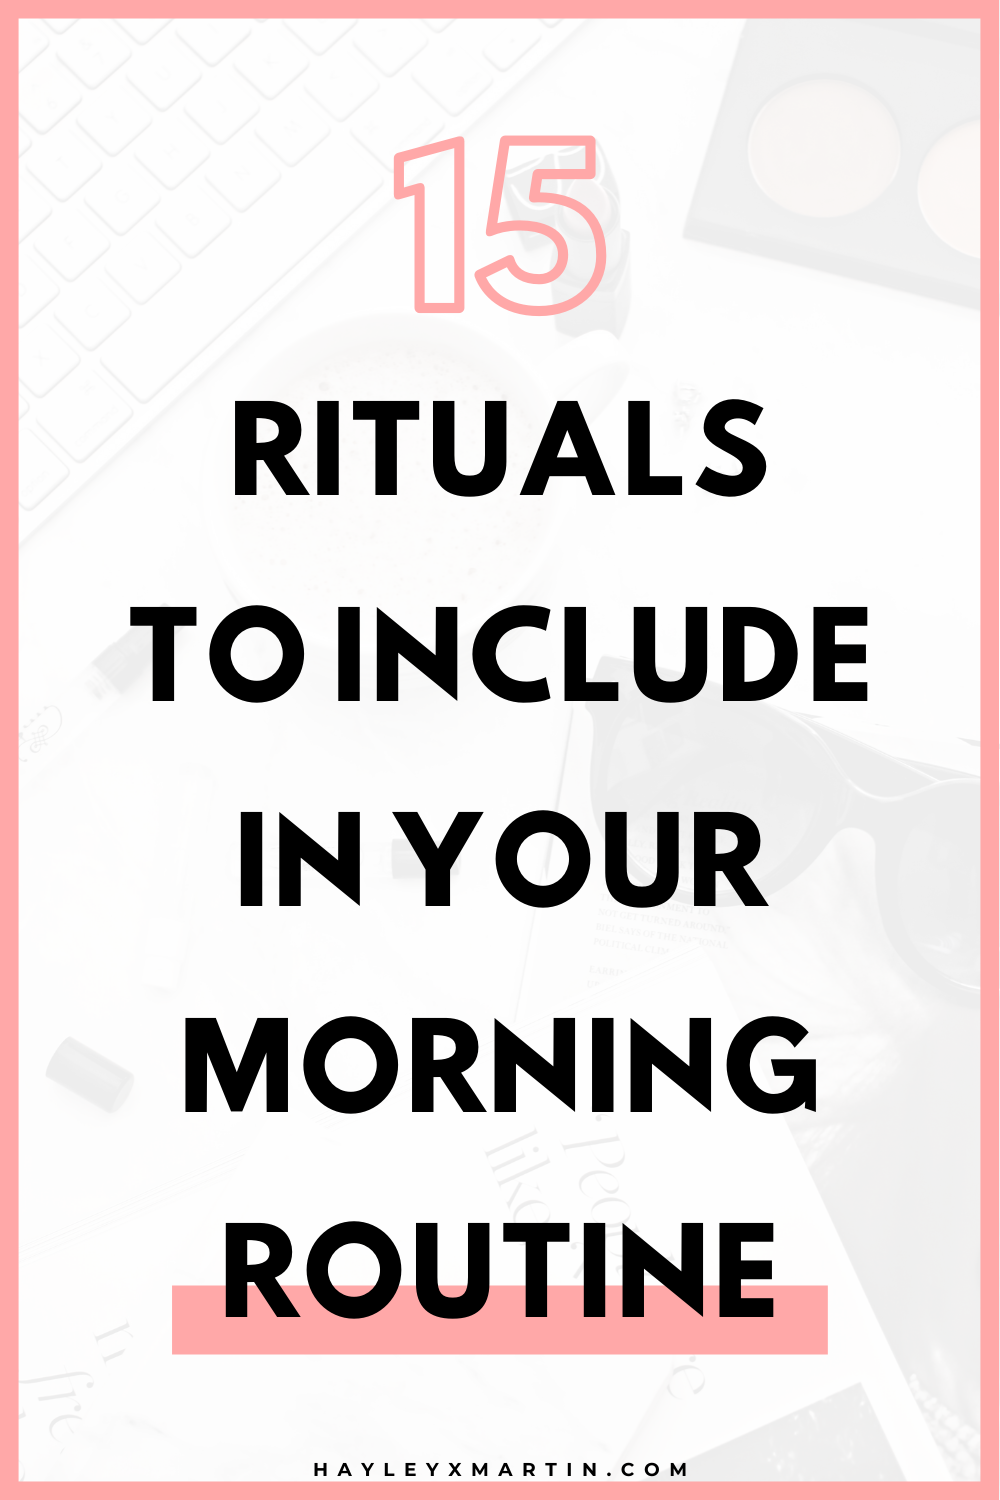 15 rituals to include in your morning routine | hayleyxmartin